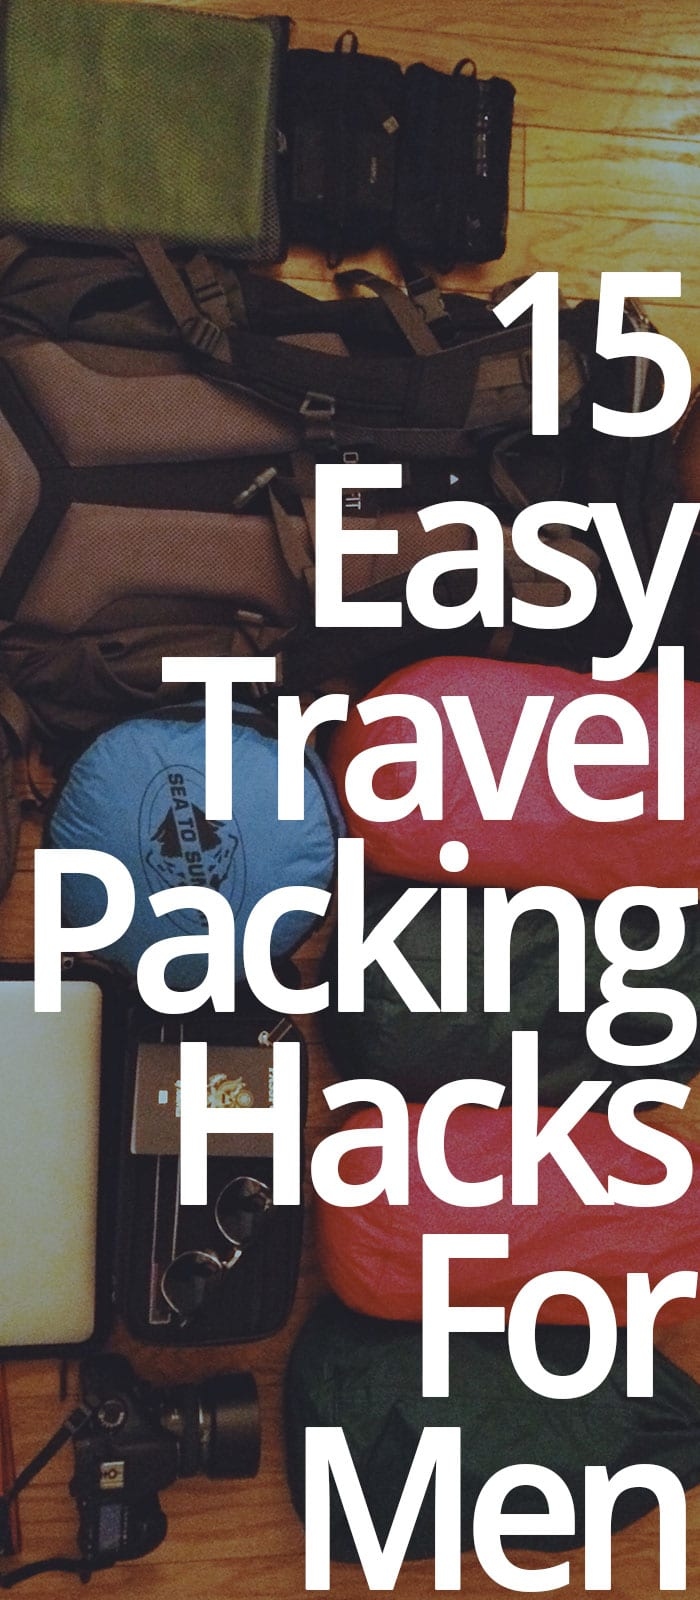 15 Easy Travel Packing Hacks For Men